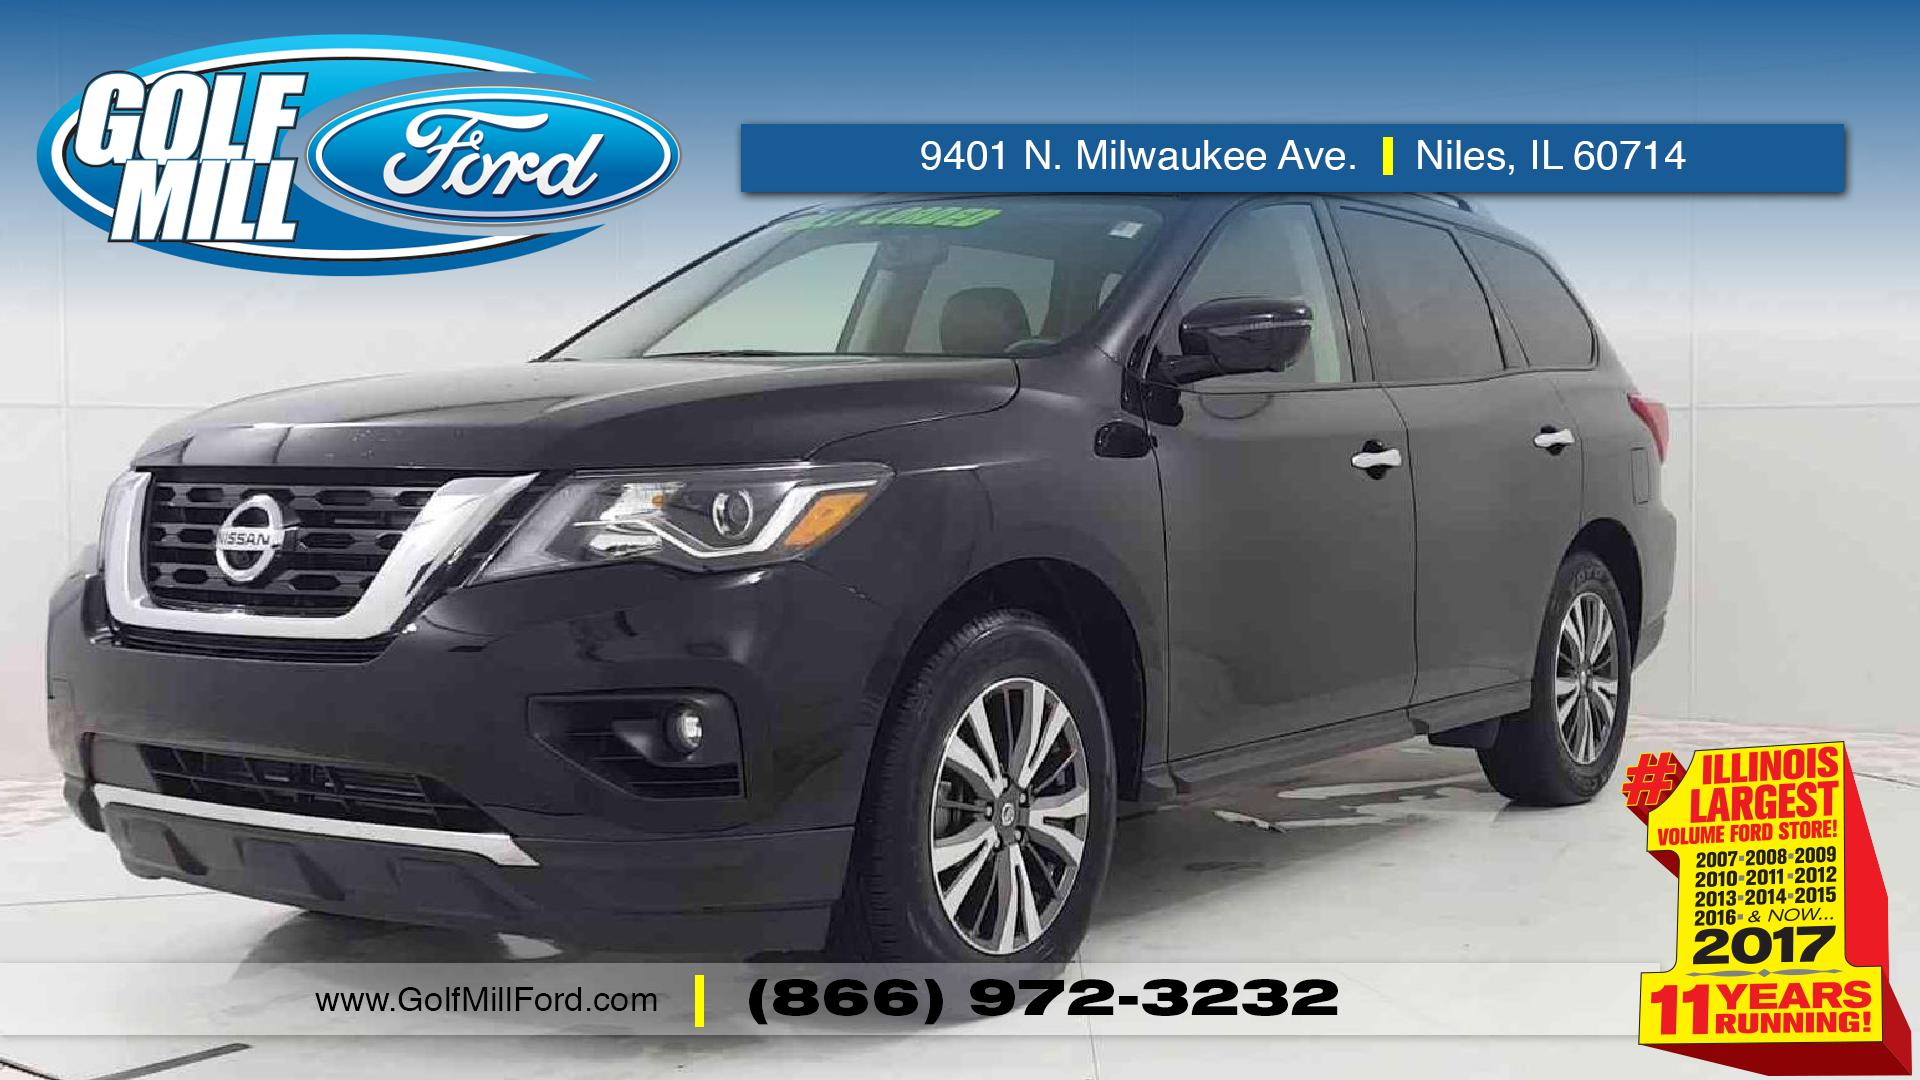 pathfinder pictures suv nissan news used and research image history value sales